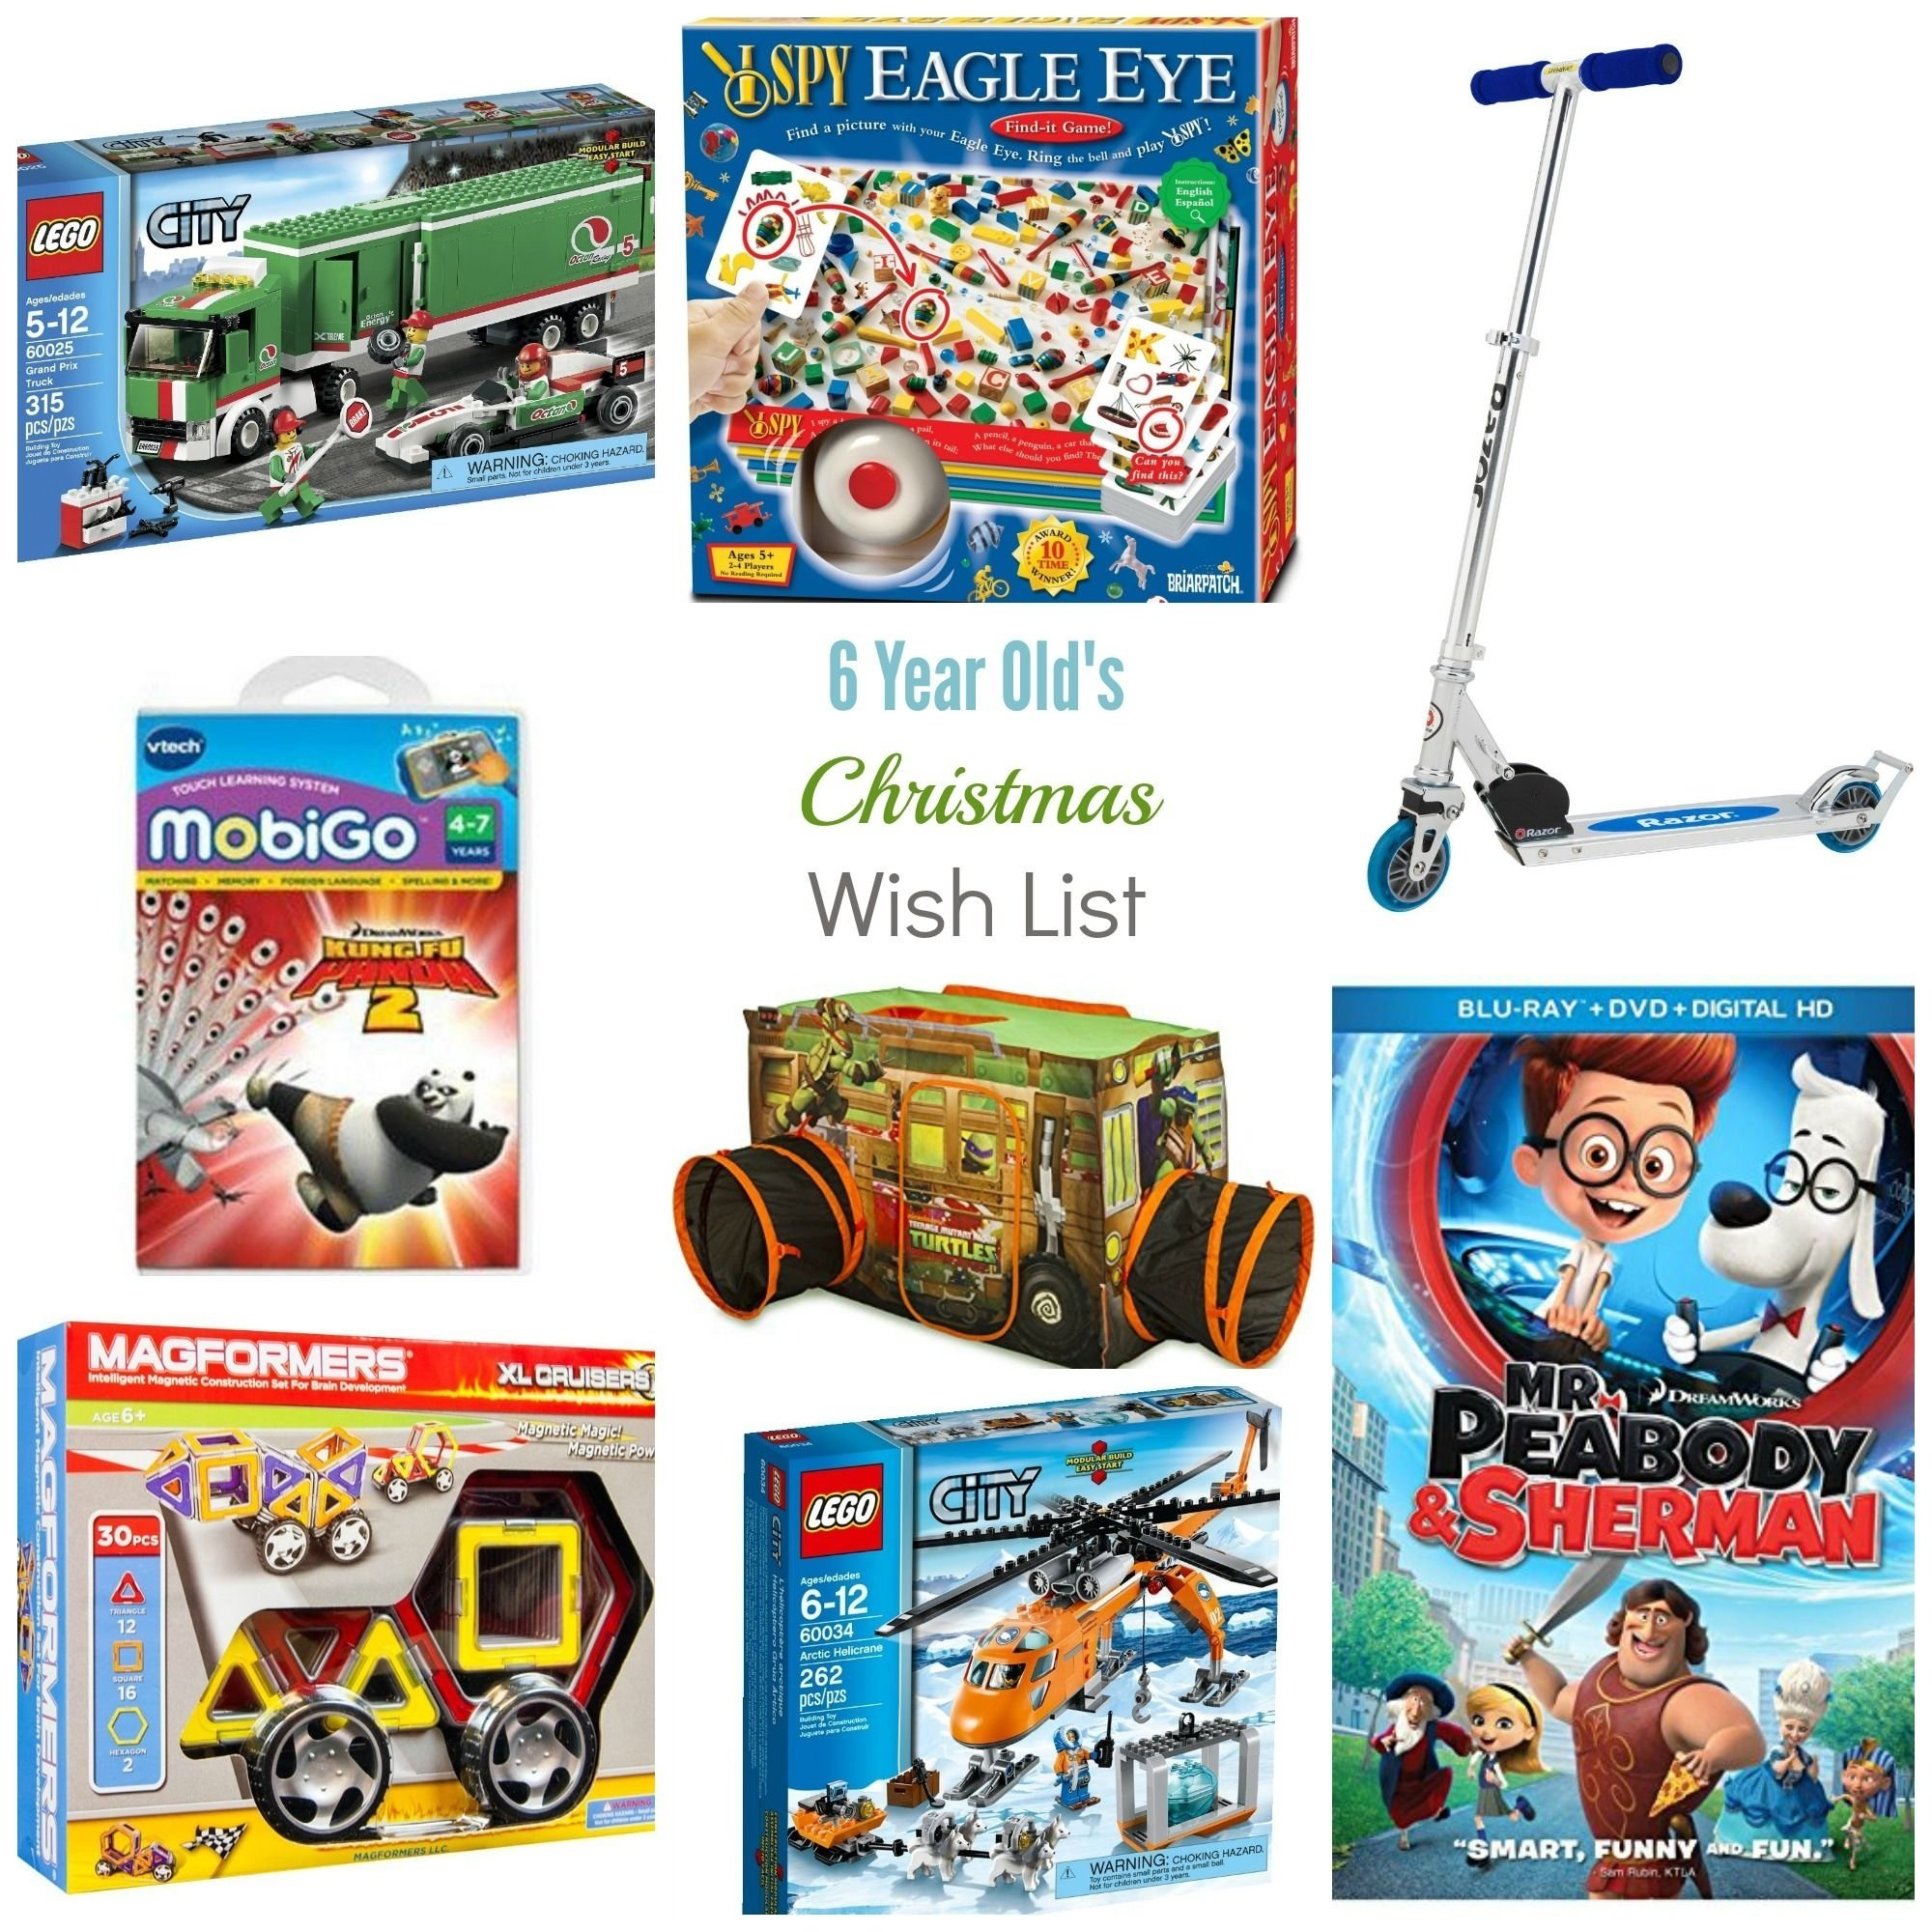 10 Famous Gift Ideas For 6 Year Old Boy christmas wish list 6 year old boy legos ninja turtles and gift 8 2020